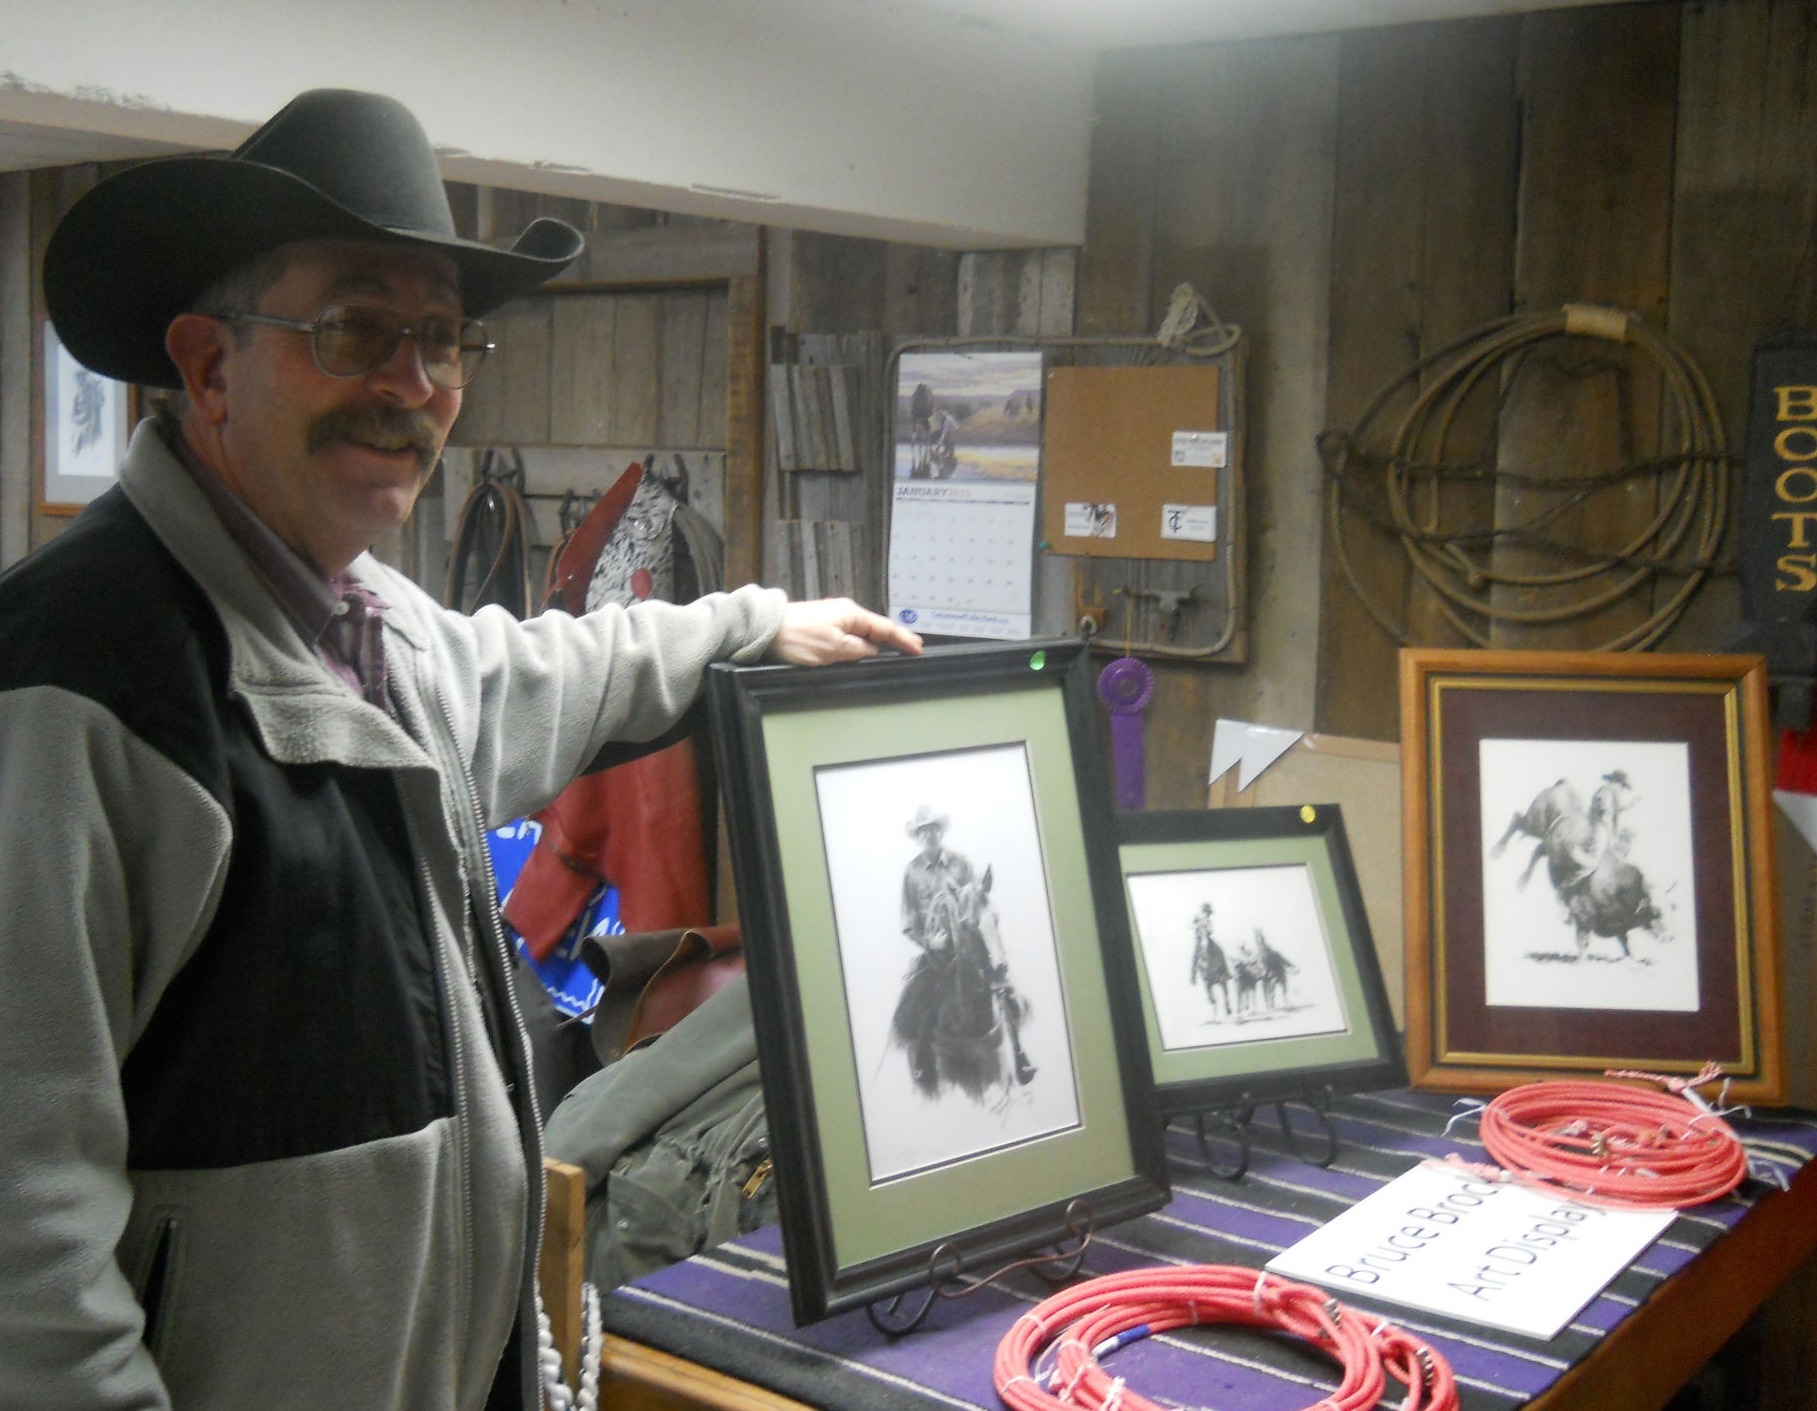 Leather craftsman-cowboy Bruce Brock is an artist, too, as verified by these elaborate pen-and-ink sketches, among the many diverse drawings and paintings he's done and has displayed in the lower level of Jim Bell and Son, Cottonwood Falls.